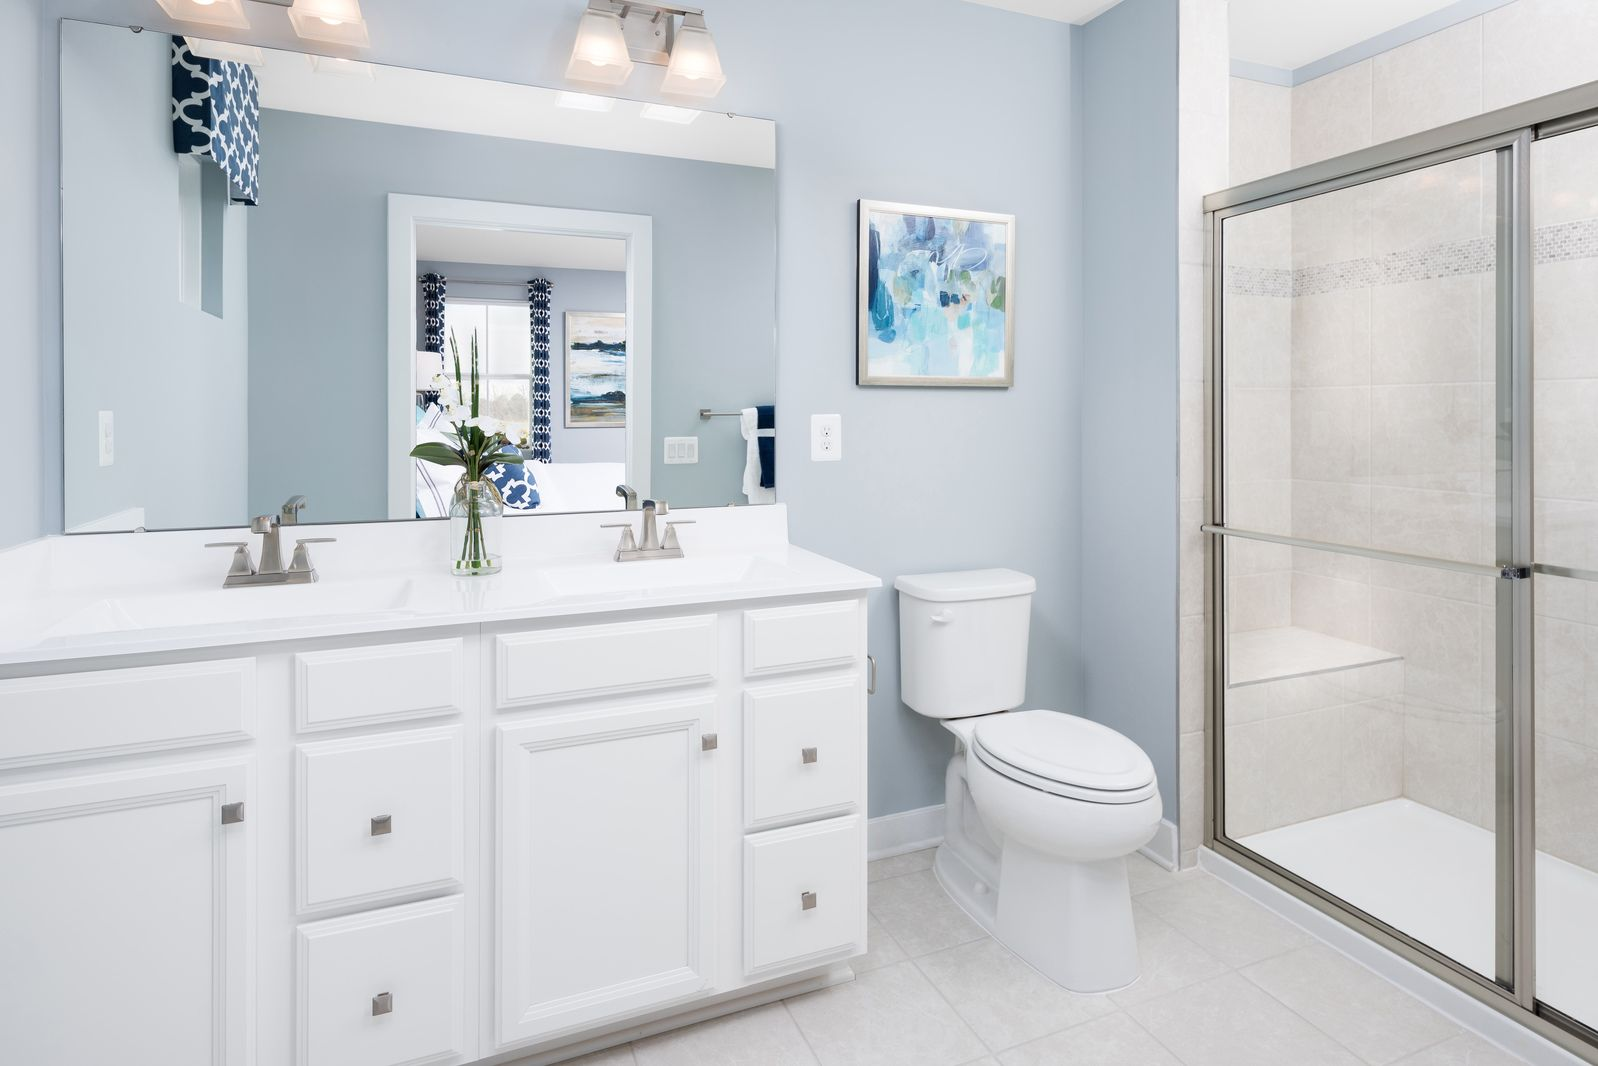 Bathroom featured in the Grand Cayman By Ryan Homes in Dover, DE